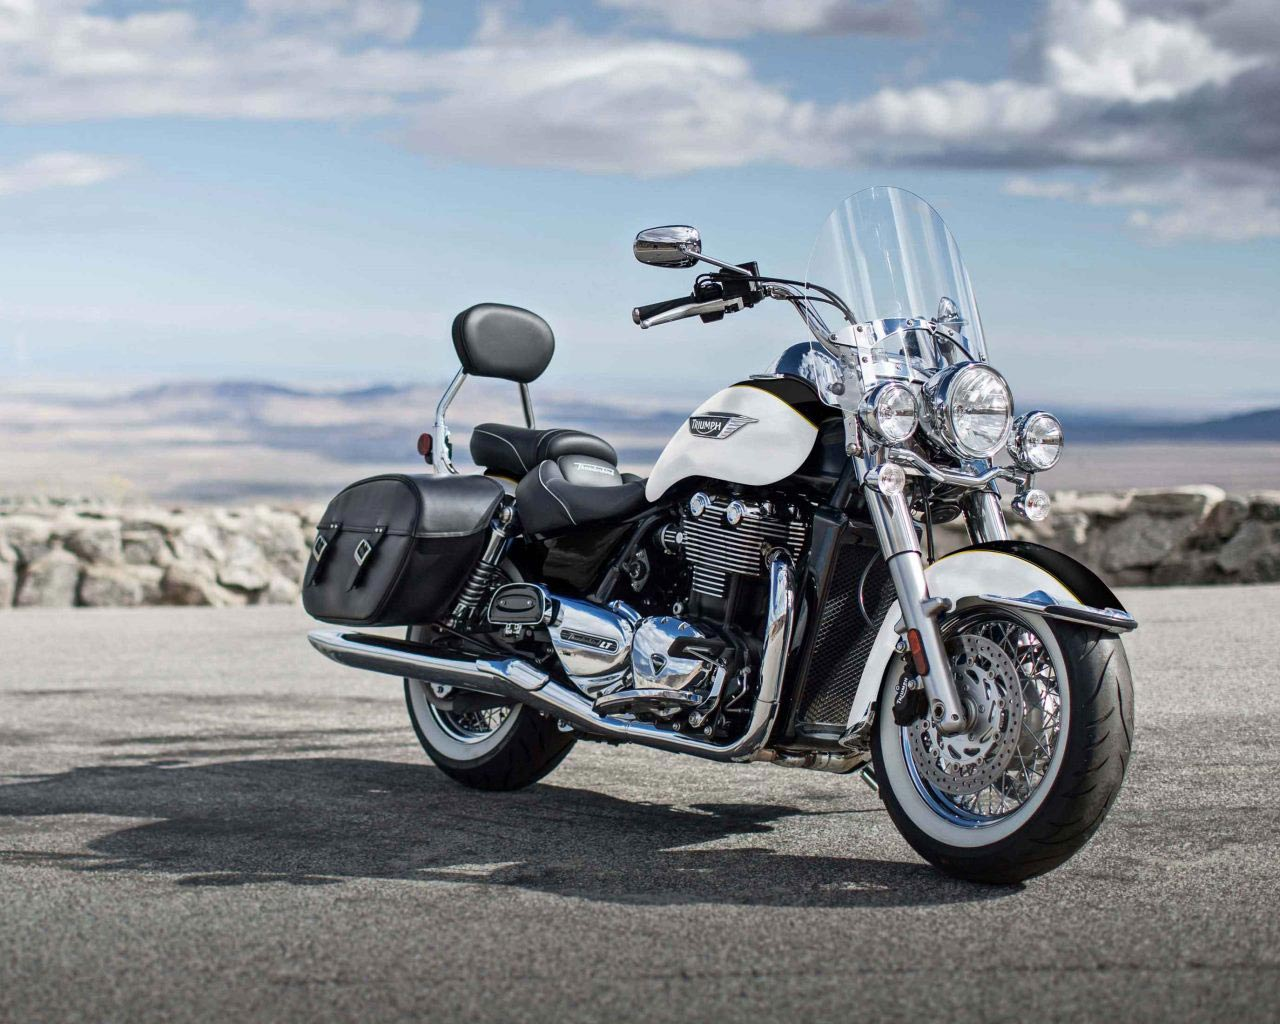 2018 Triumph Thunderbird Lt Review Totalmotorcycle